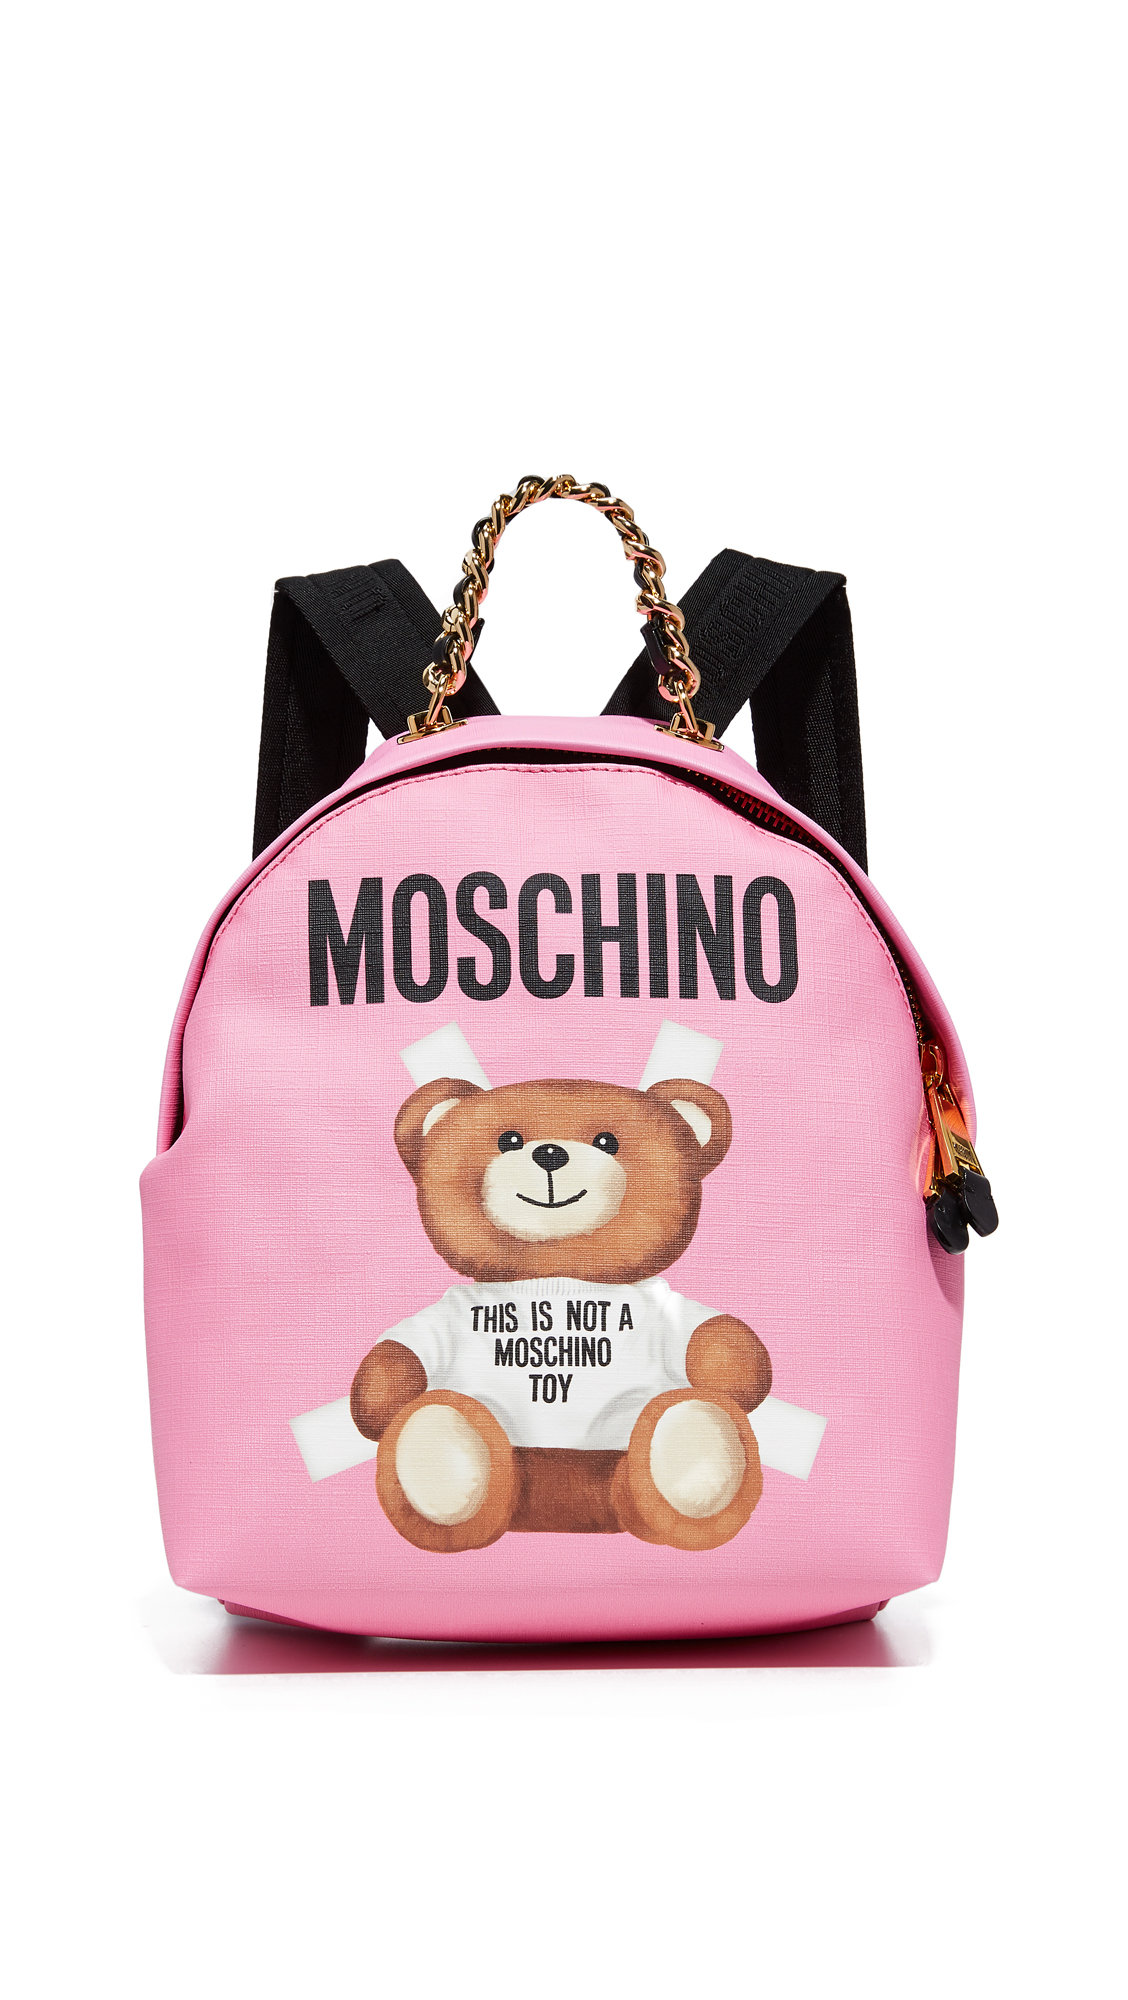 A teddy bear graphic and logo lettering complete the eye catching look of this bright Moschino backpack. The wraparound zip opens to a lined, 3 pocket interior. Chain locker loop and adjustable shoulder straps. Dust bag included.